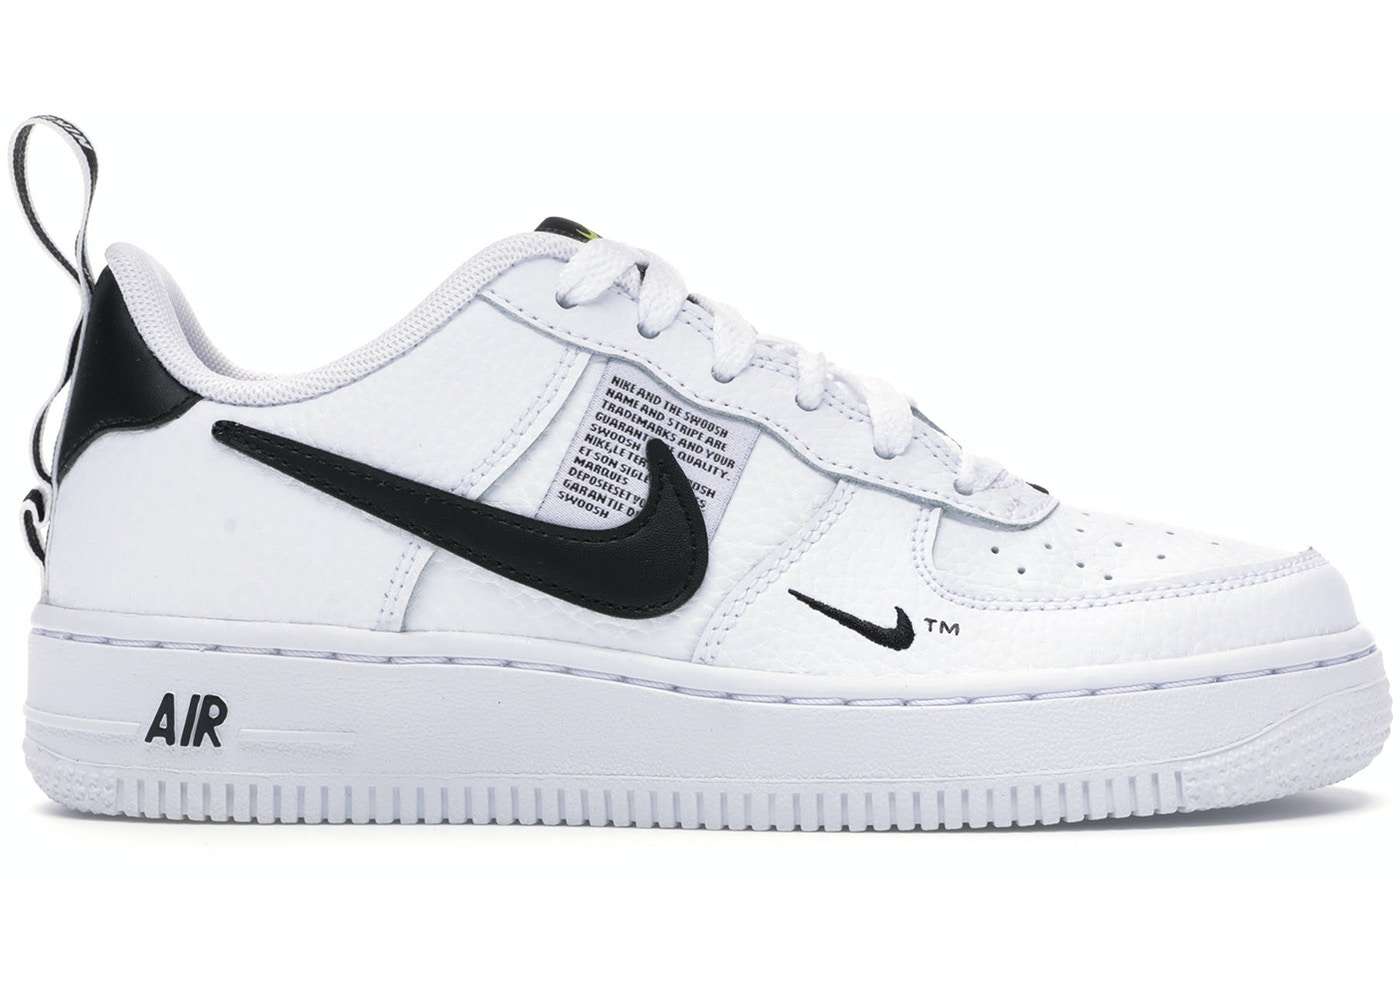 Nike Air Force 1 Low GS Nike Air Force 1 Low Utility White Black (GS) - AR1708-100